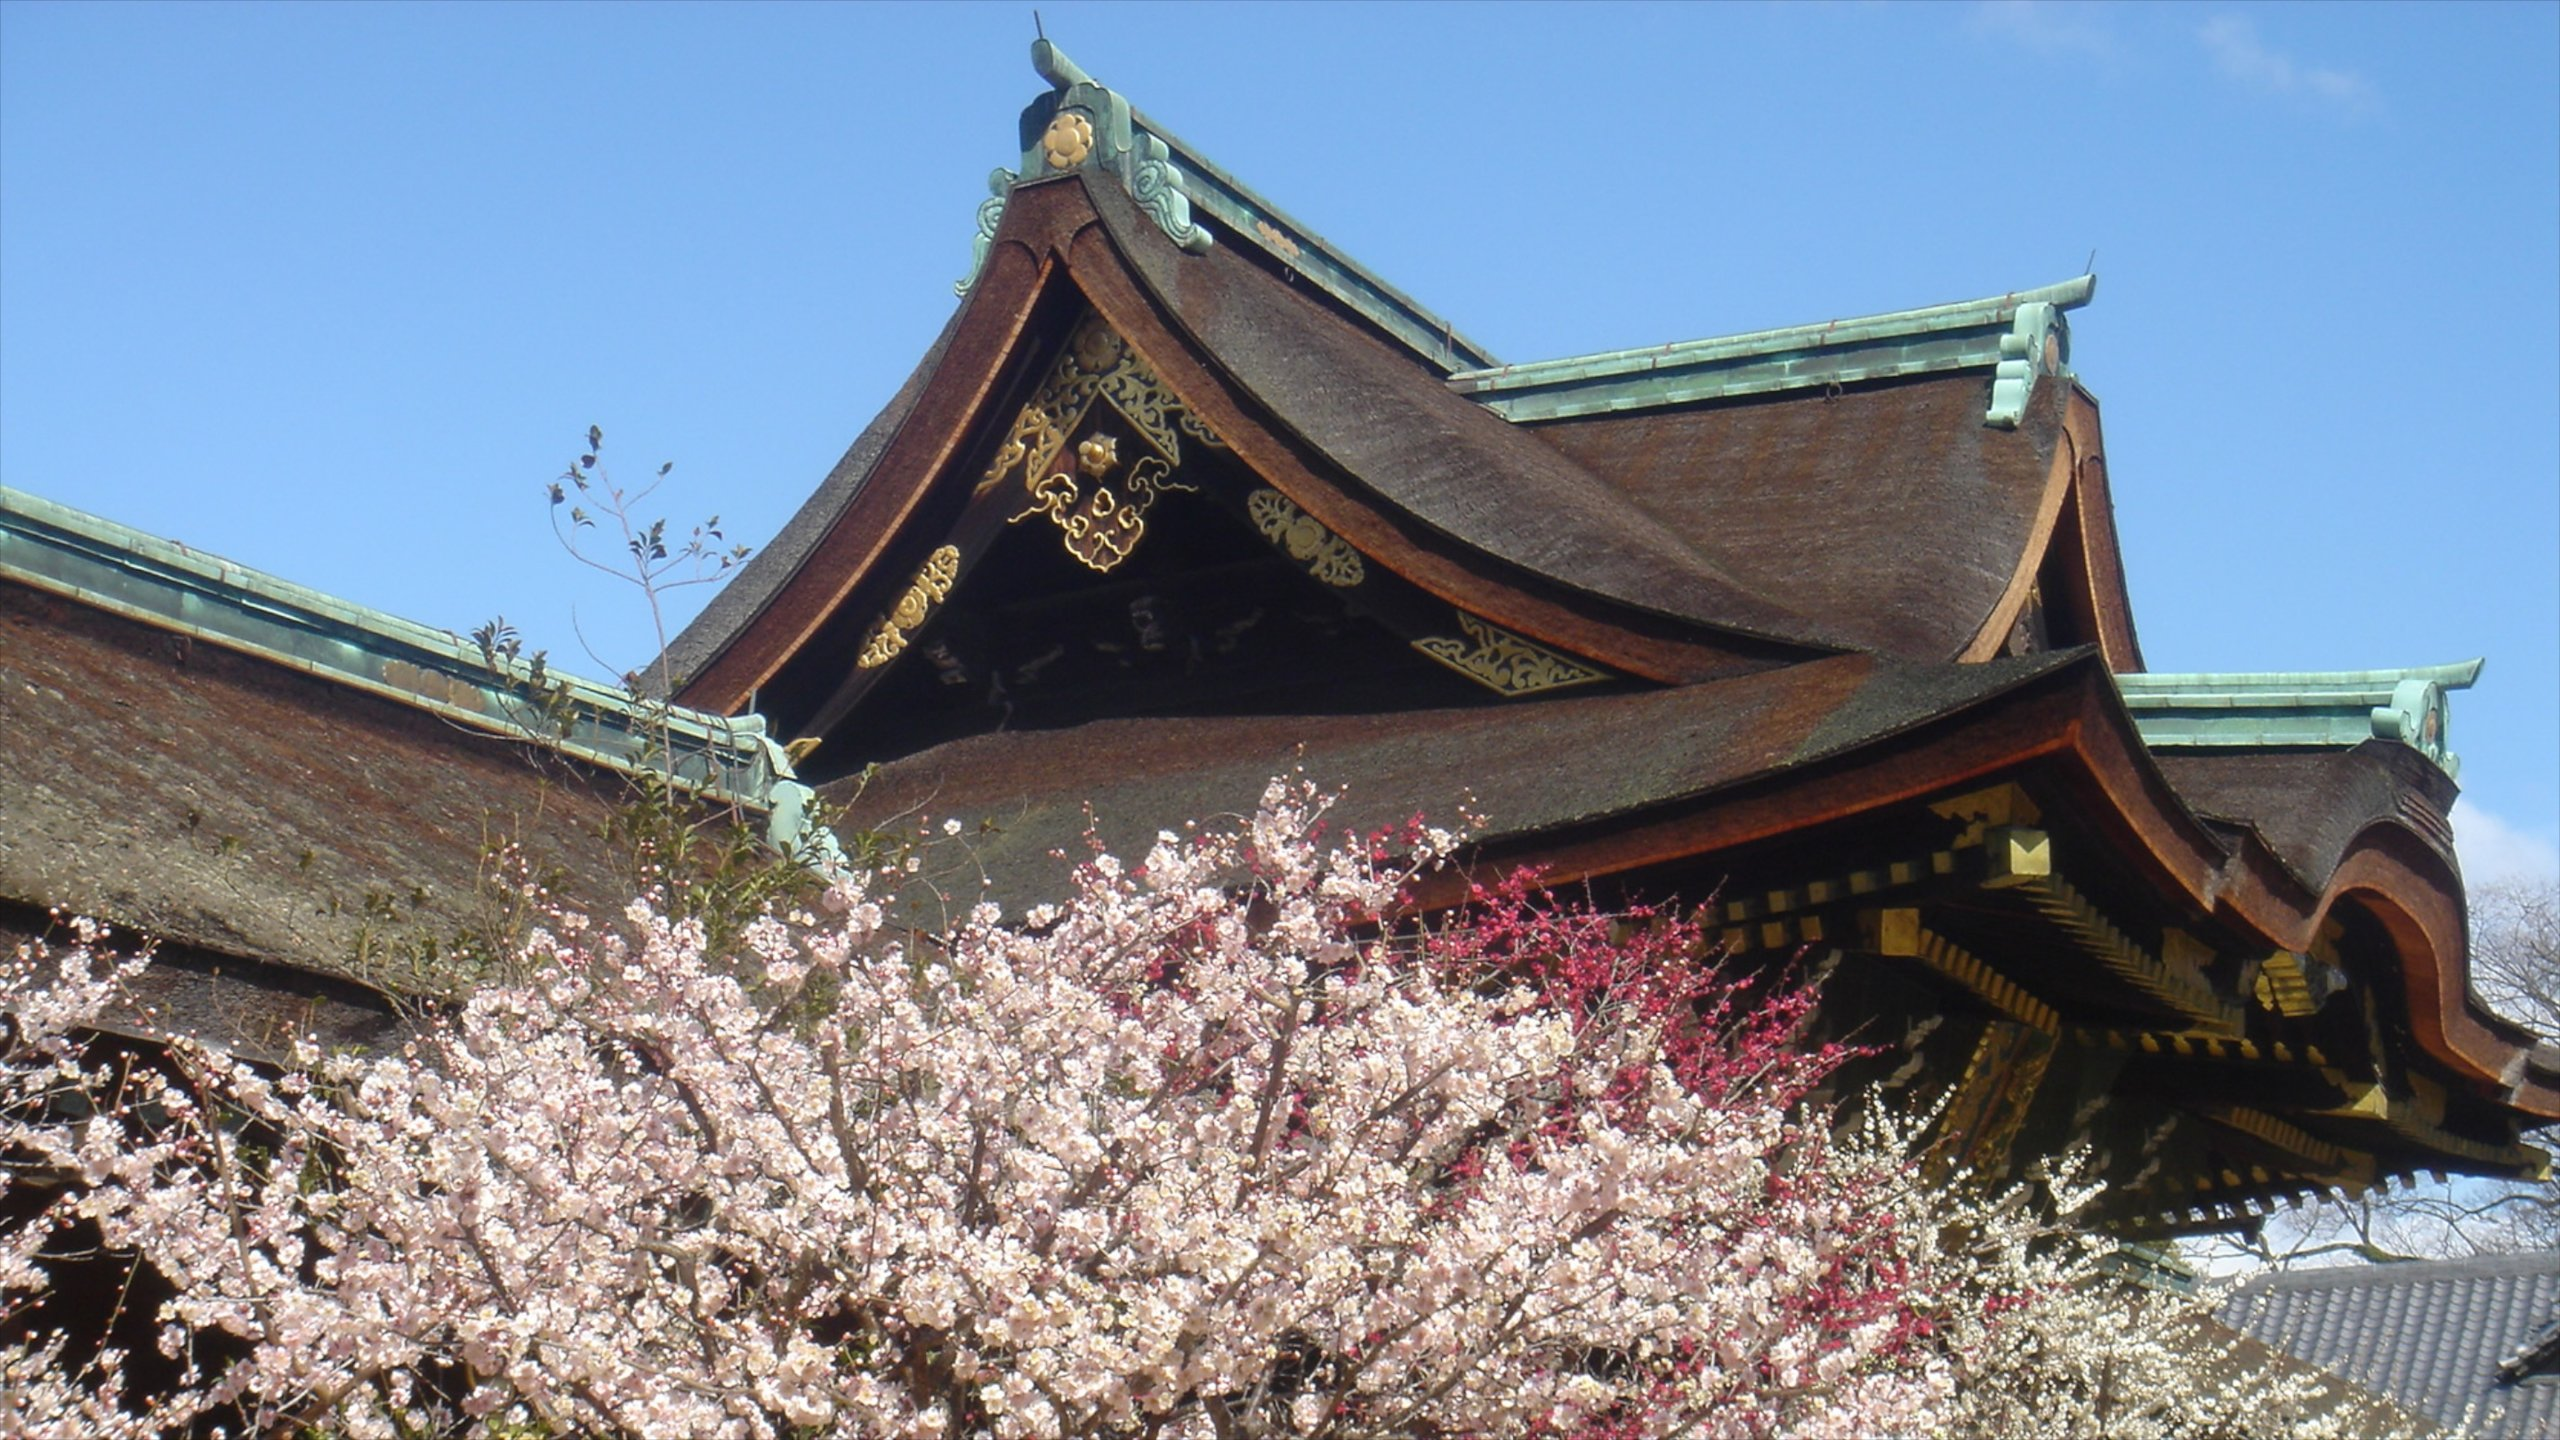 Top 10 Hotels In Nishijin Kyoto From 30 Night Save